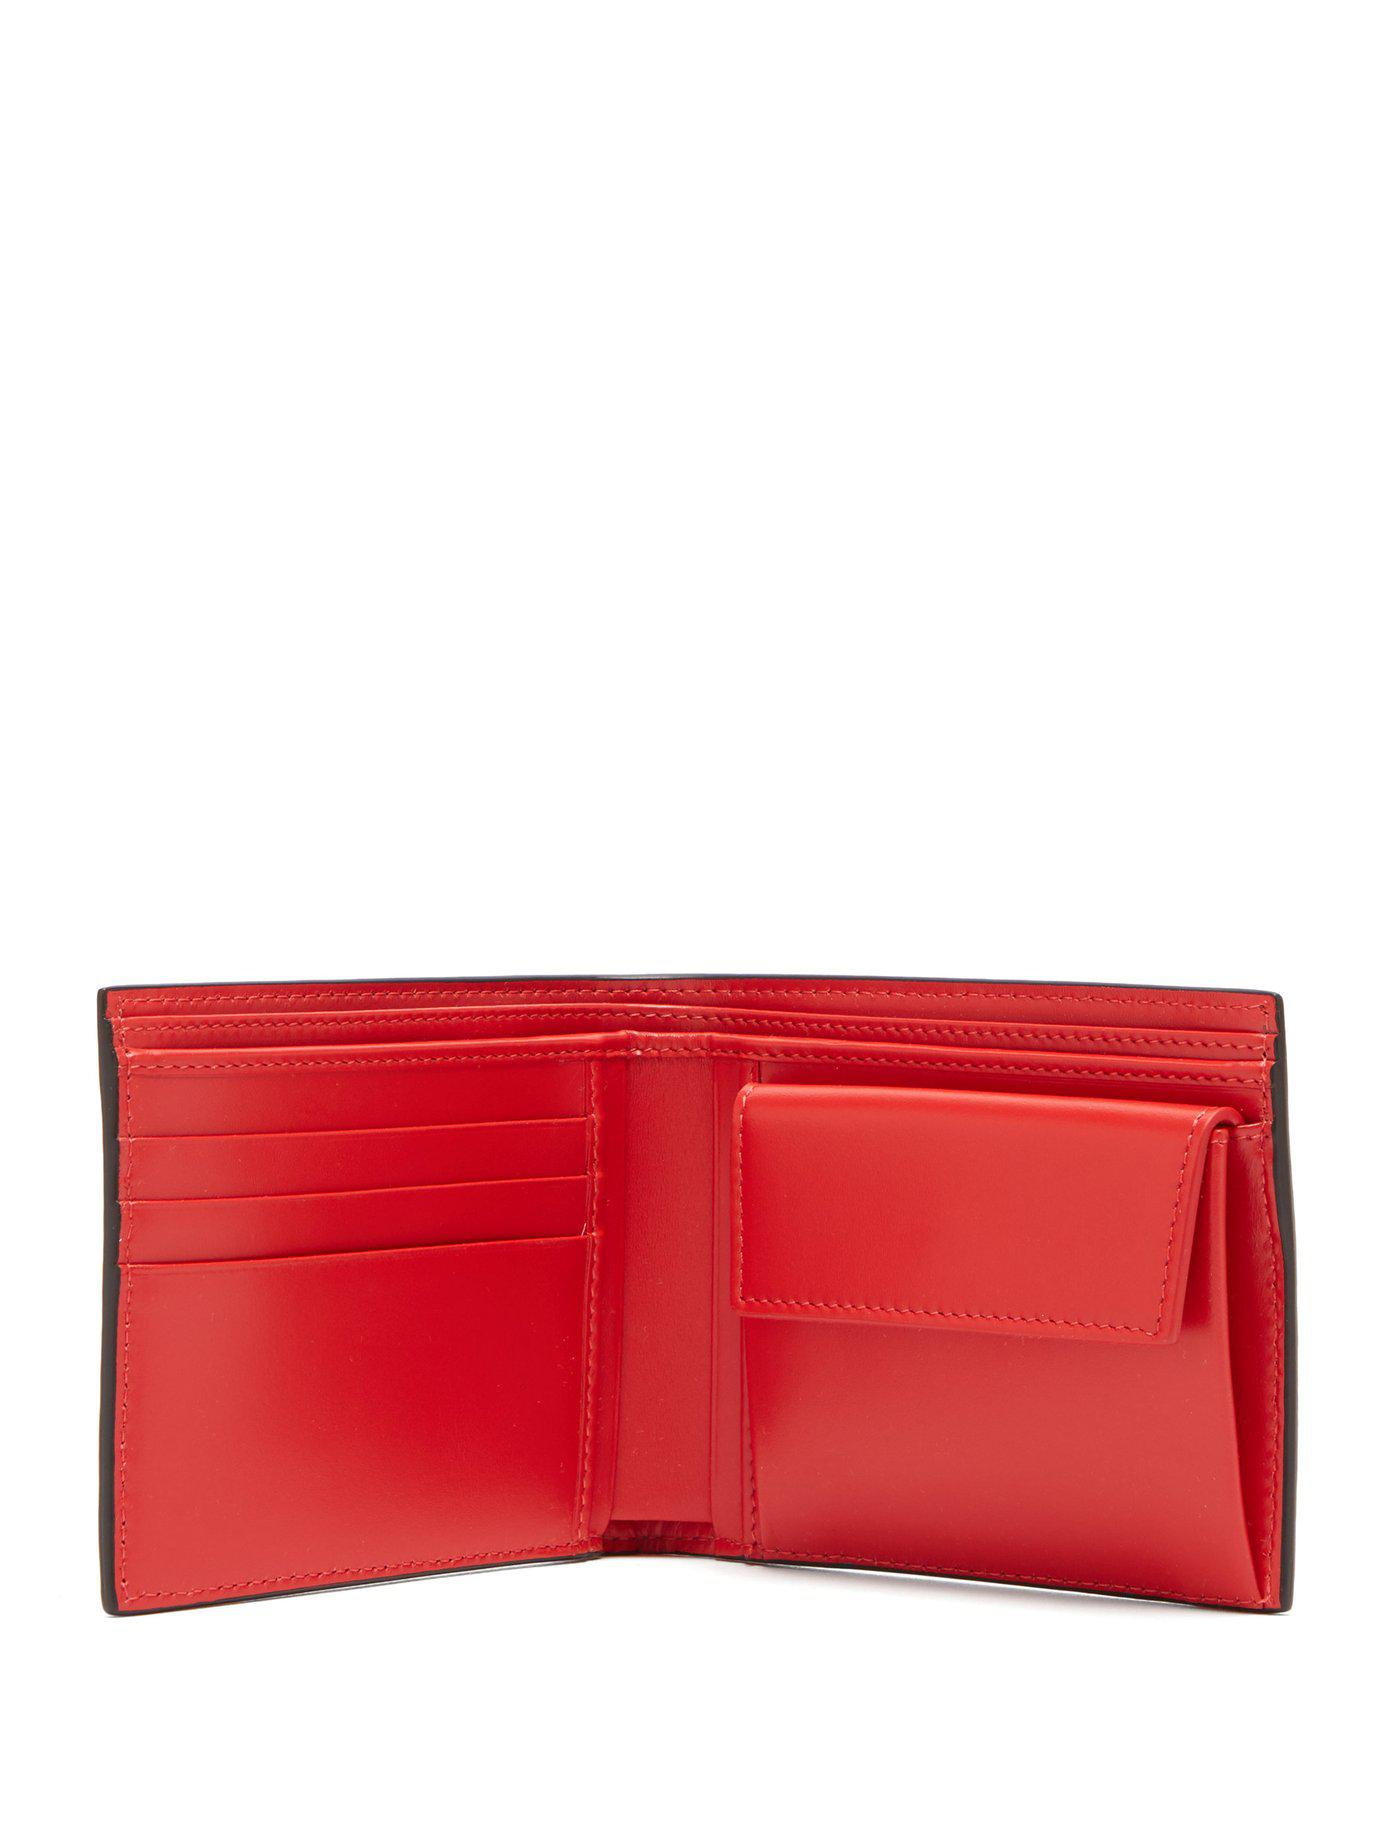 a75af1396aa Lyst - Christian Louboutin Spike And Leather Bi Fold Wallet for Men